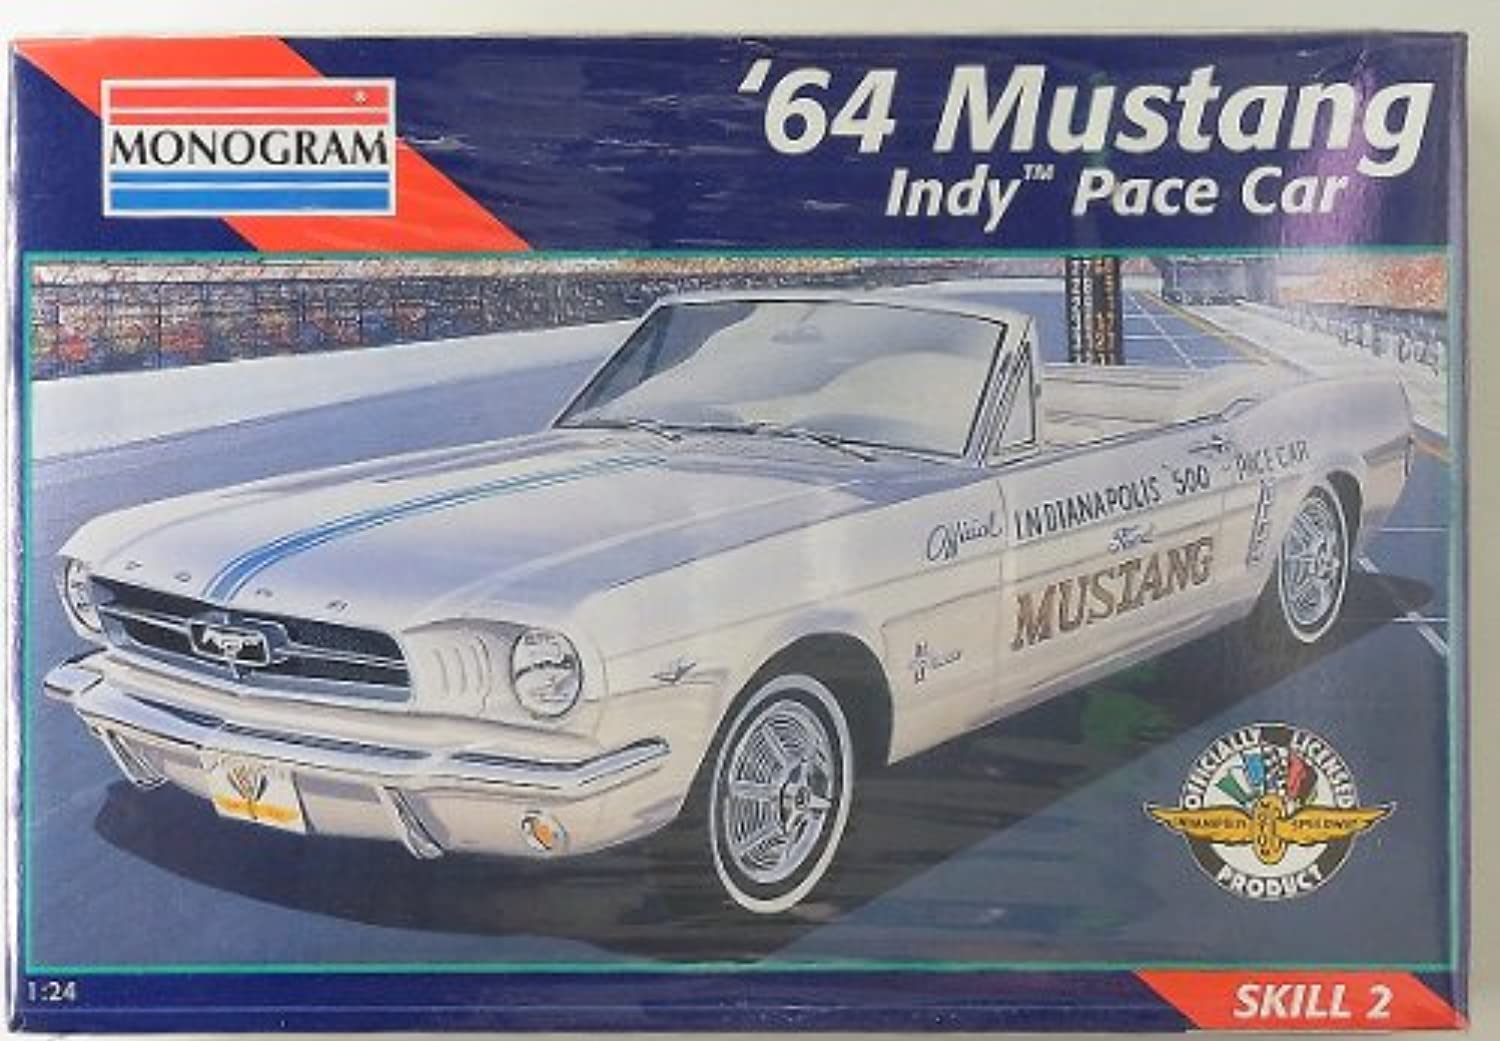 '64 Mustang Indy Pace Car 1 24